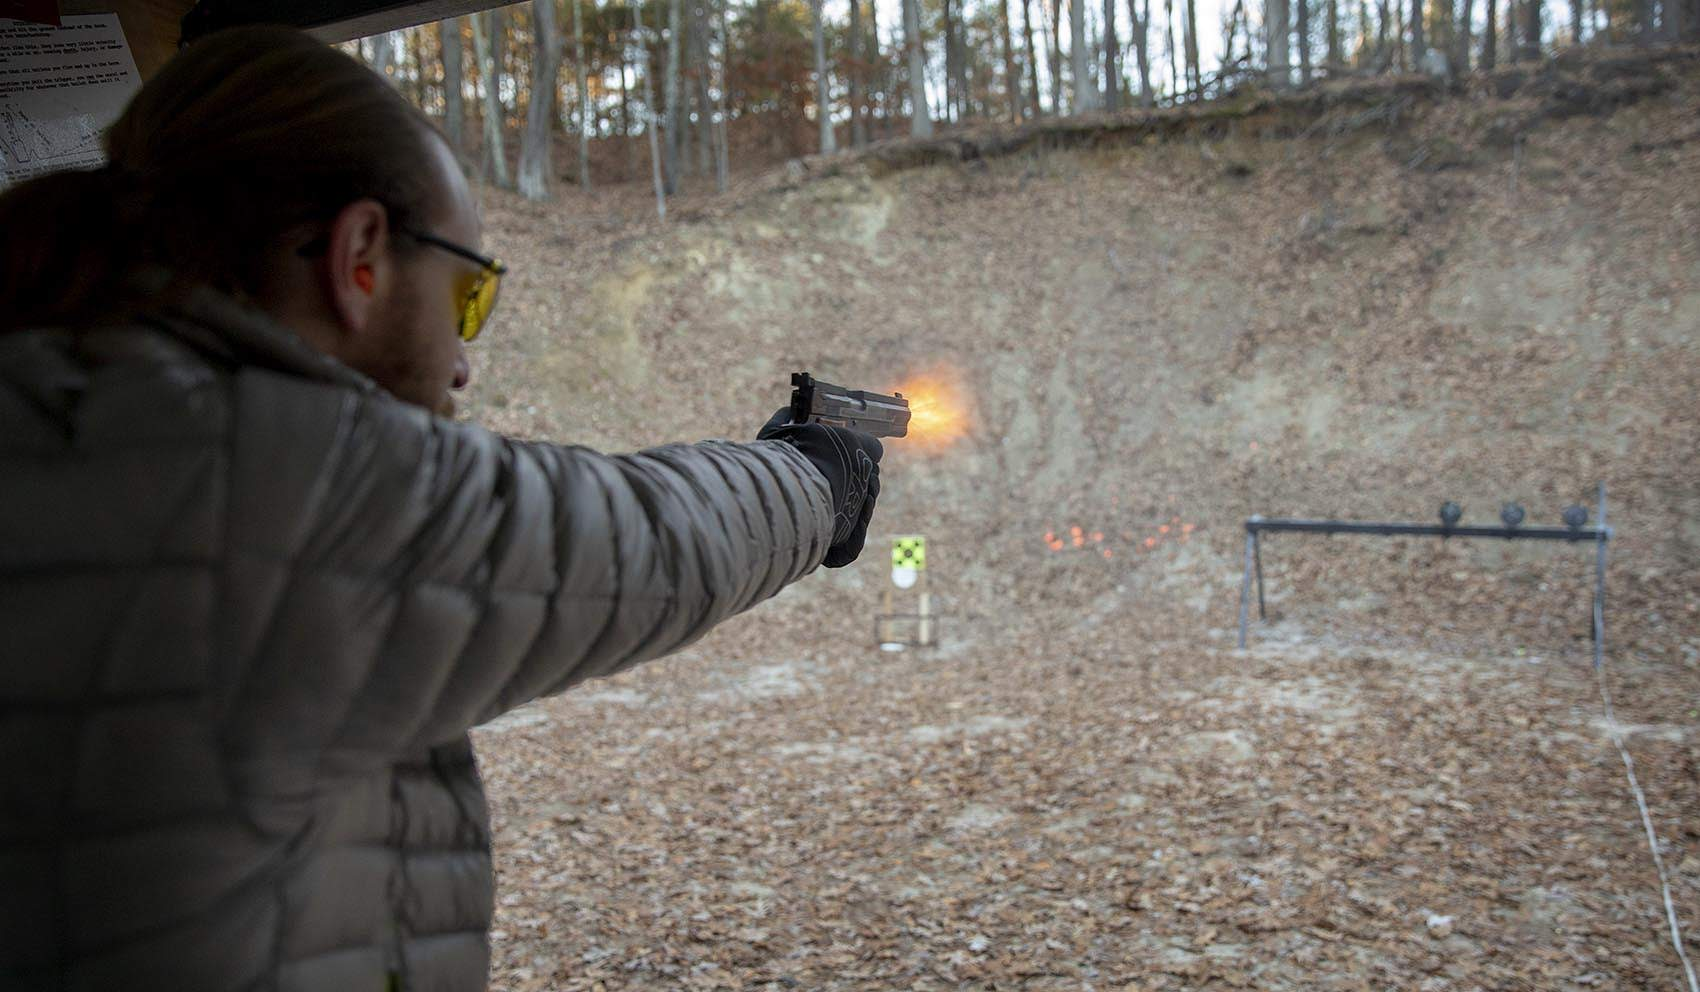 Aaron Grossman, an NRA instructor and leader of the Boston Pink Pistols, fires at targets at the Harvard Sportsmen's Club in Harvard, Mass. (Robin Lubbock/WBUR)